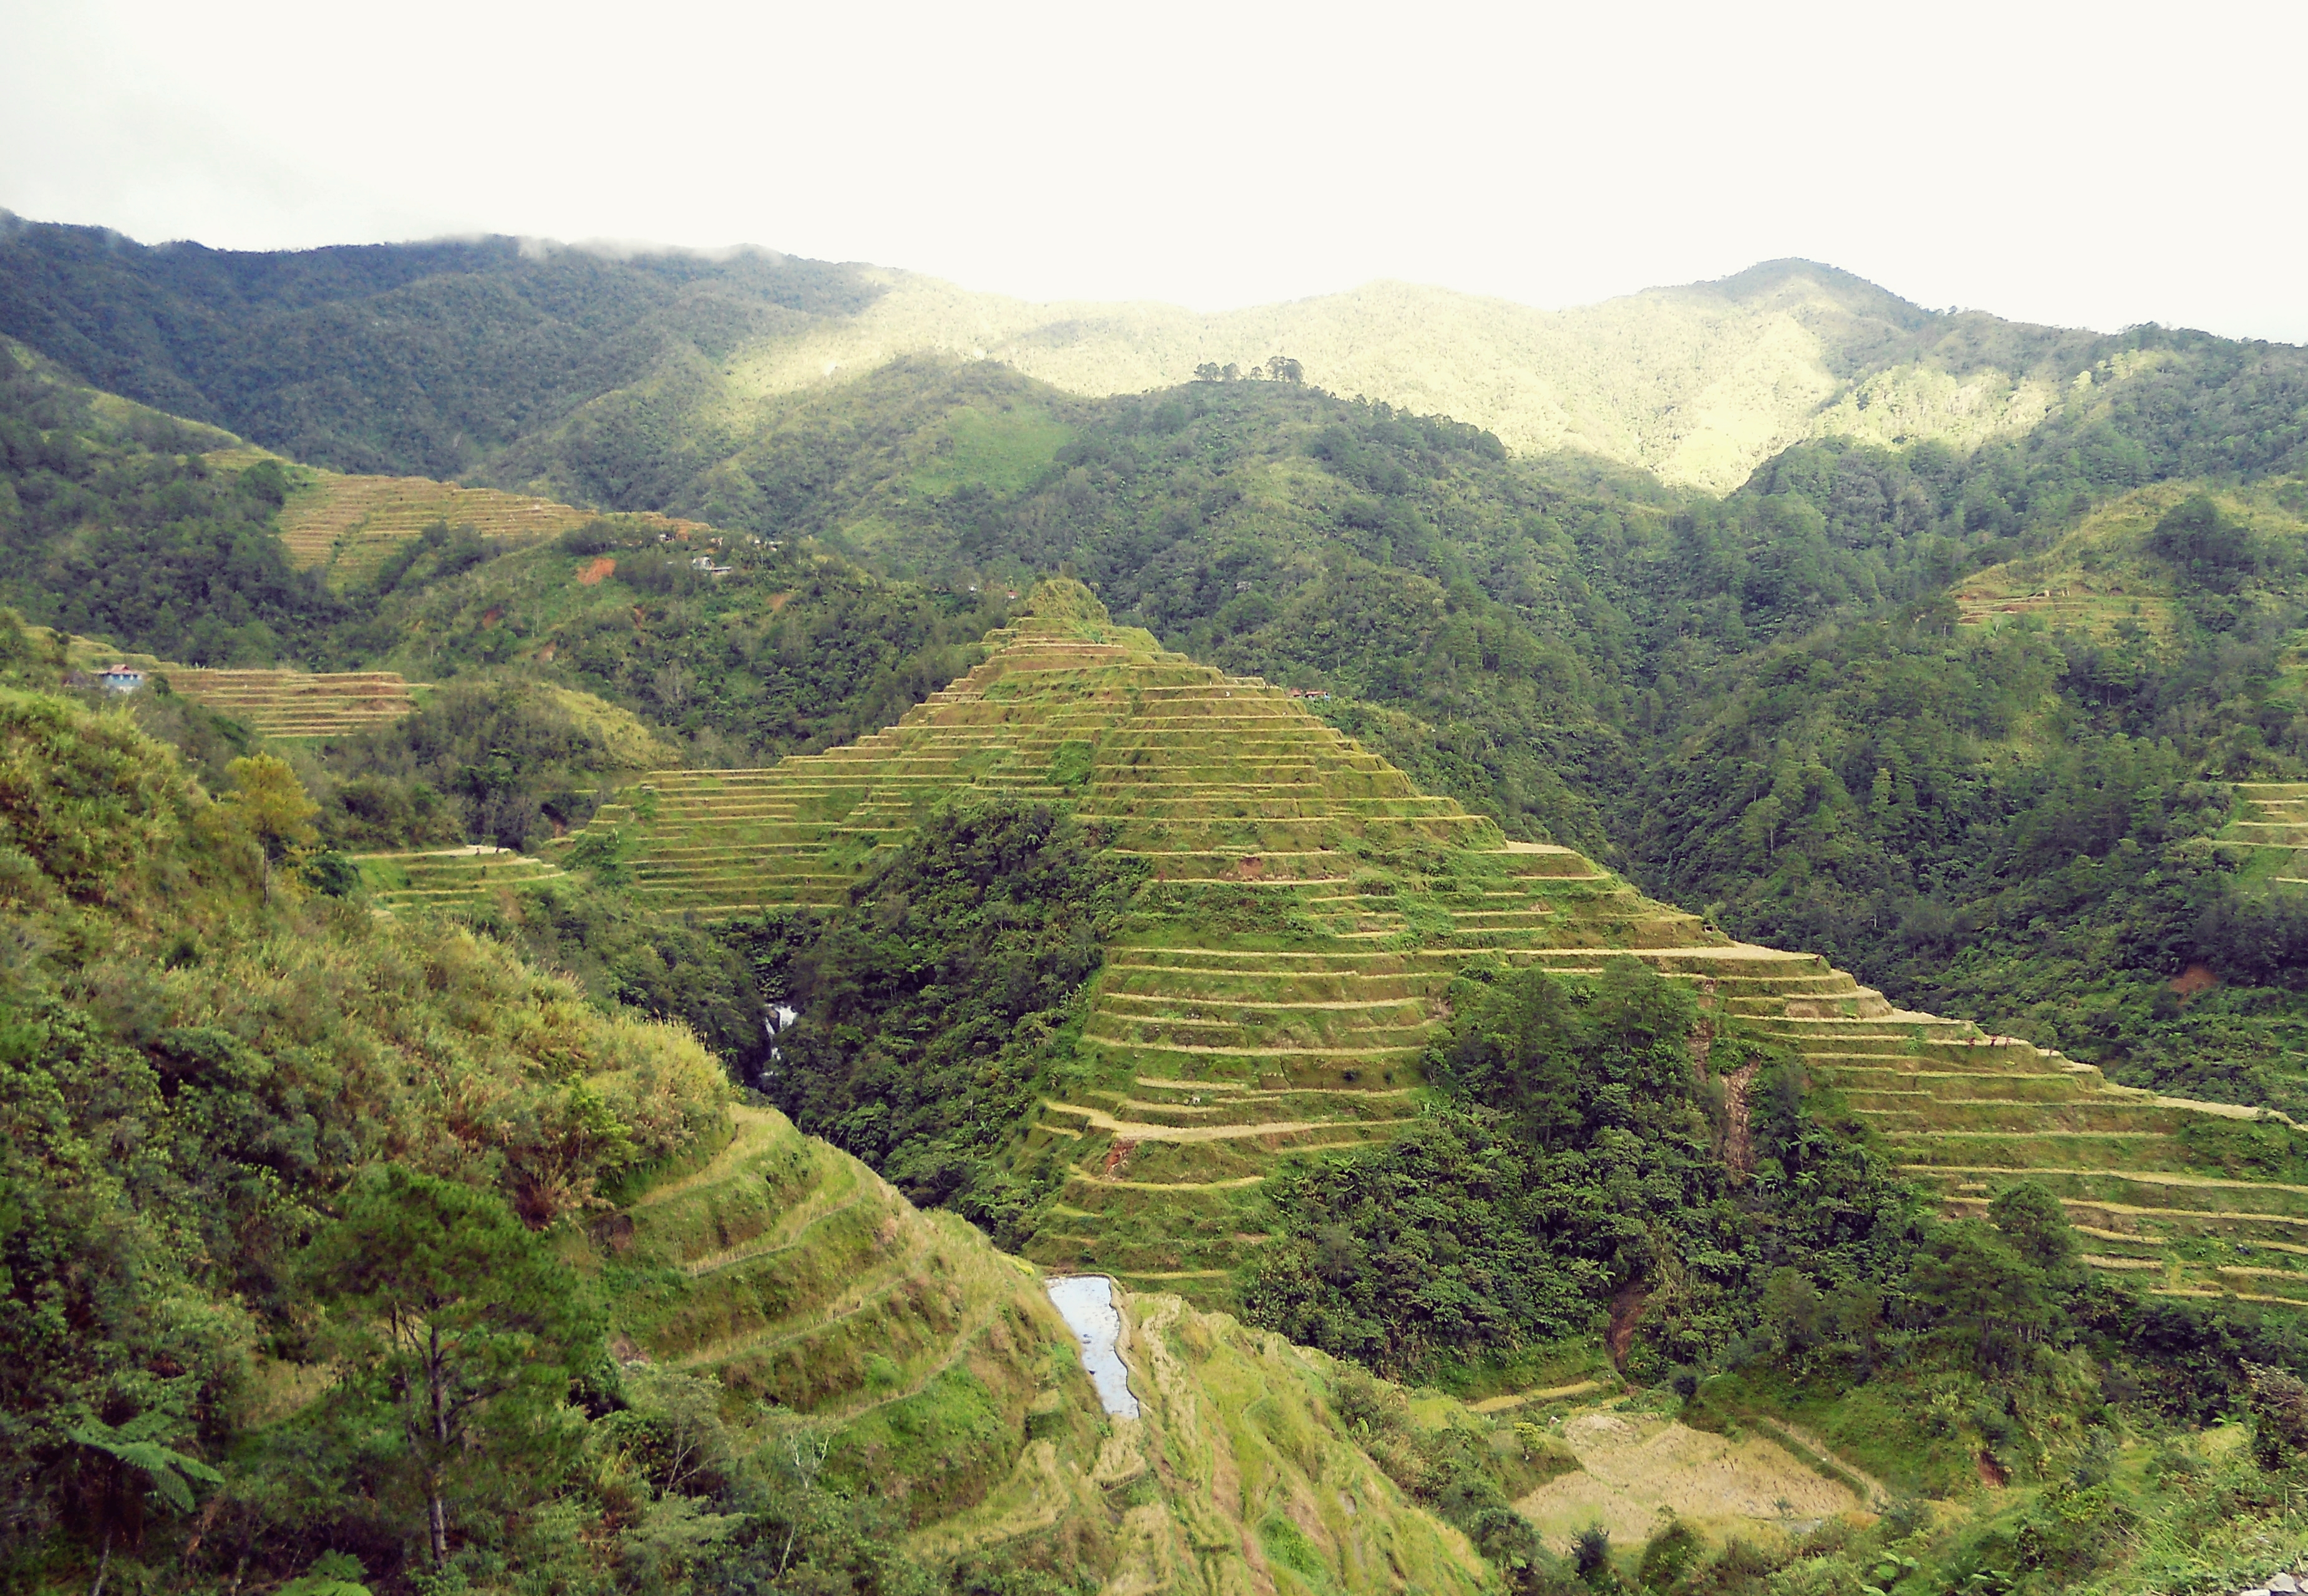 Banaue rice terraces tagalog meaning